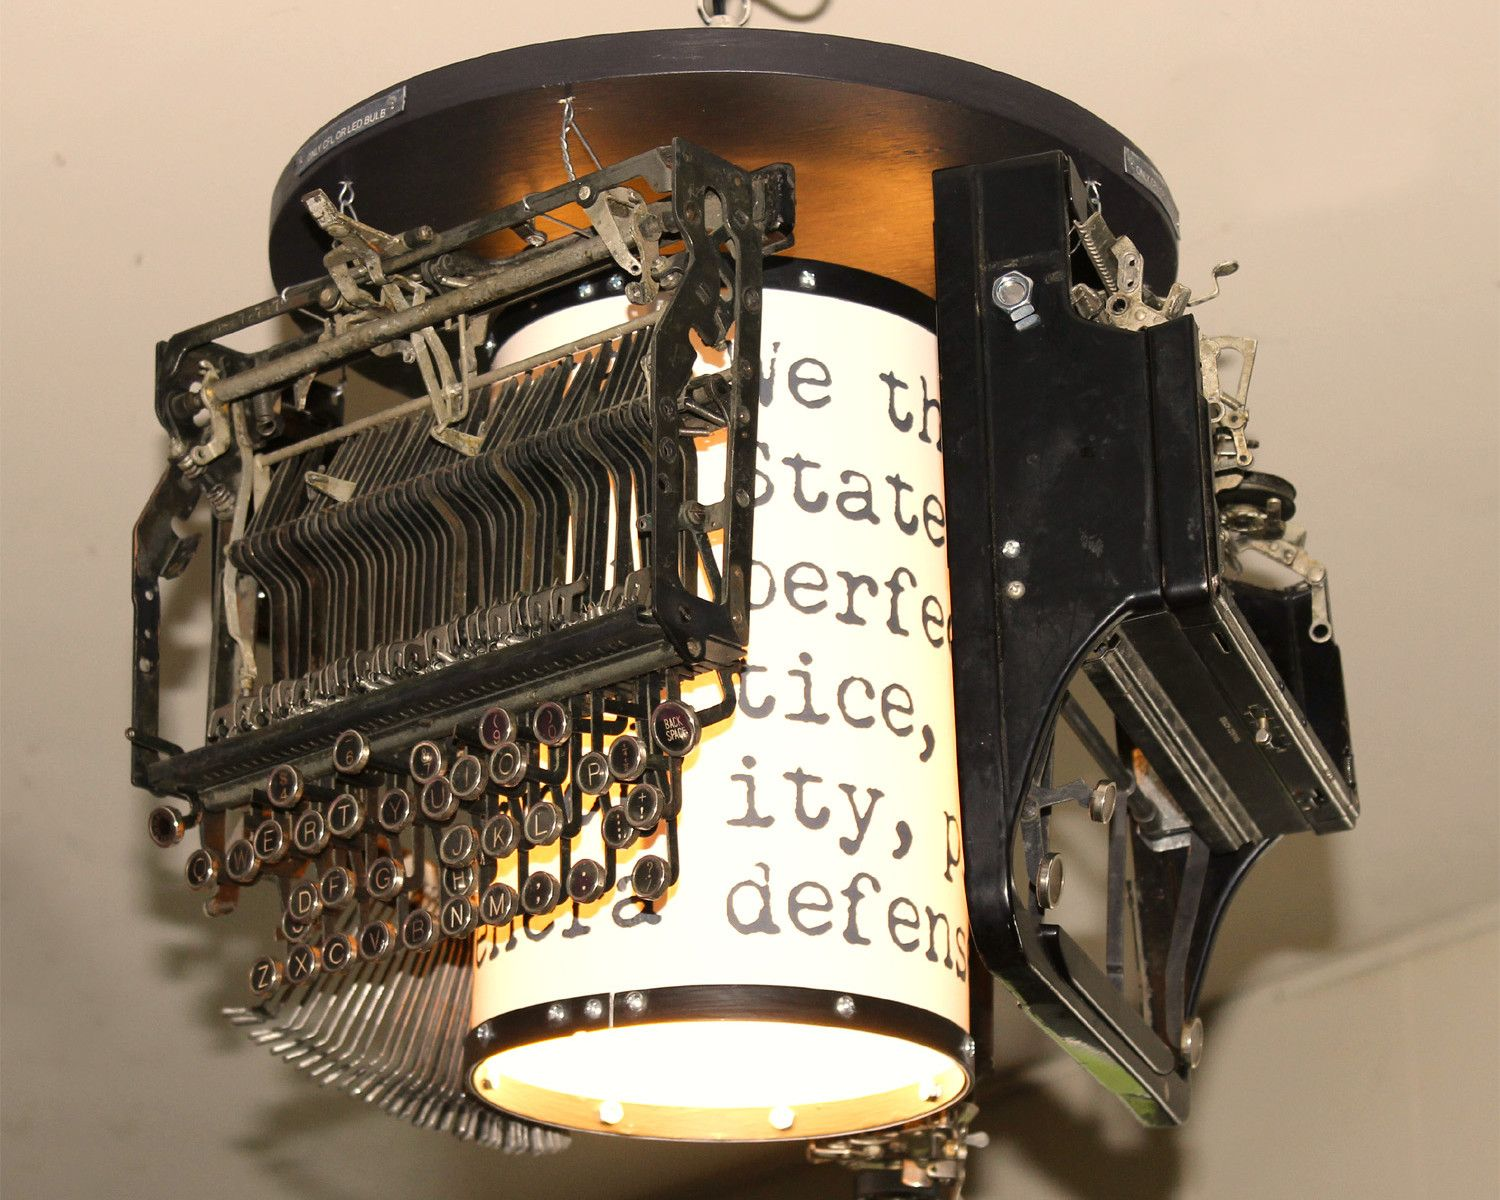 Lamp Revival Transforms Landfill Waste Into One Of A Kind Lighting Sculptures Lamp Recycled Lamp Light Sculpture